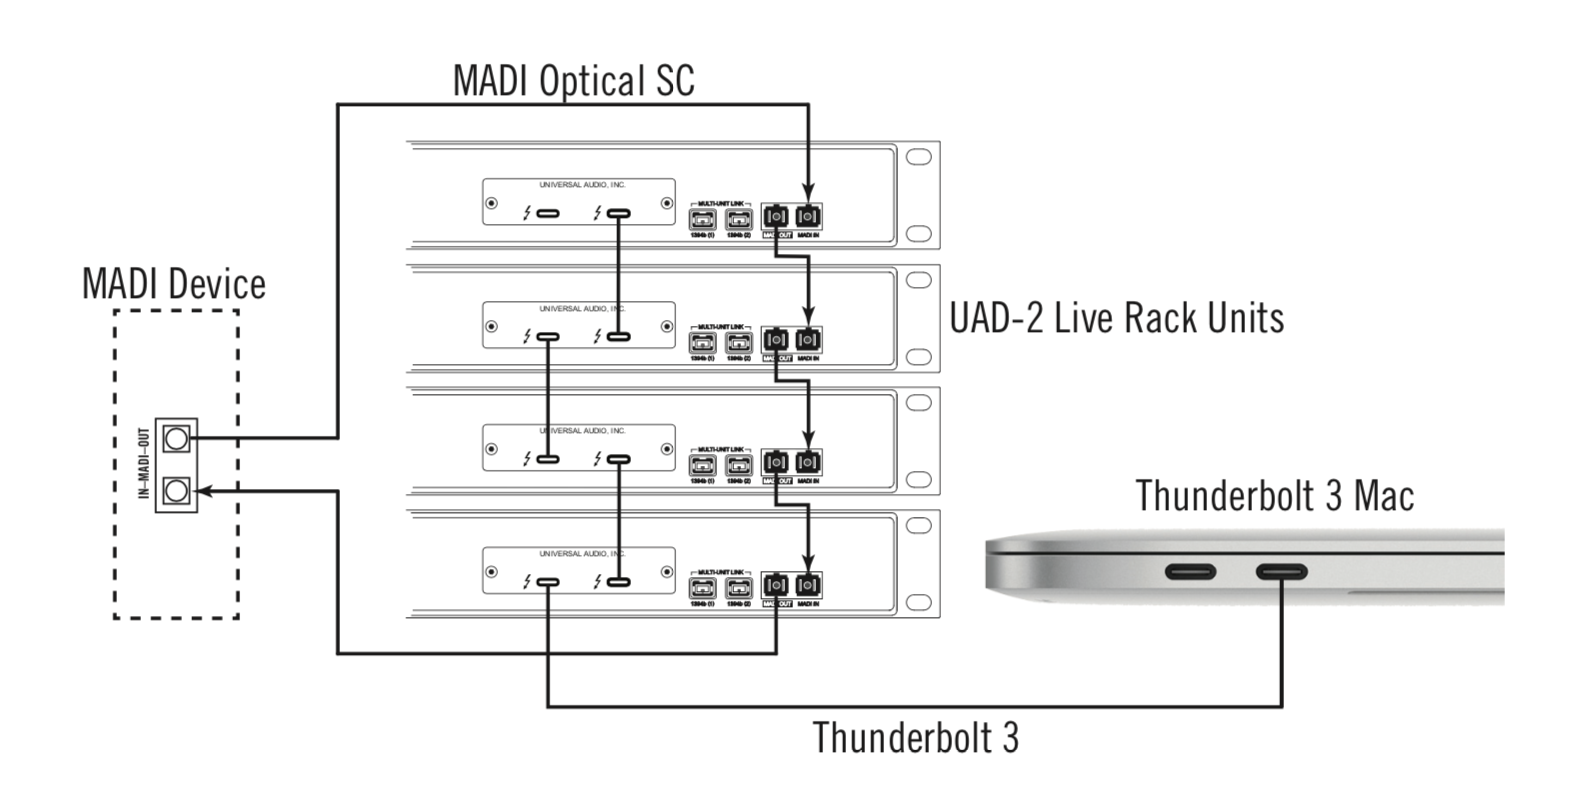 Uad 2 Live Rack System Connections